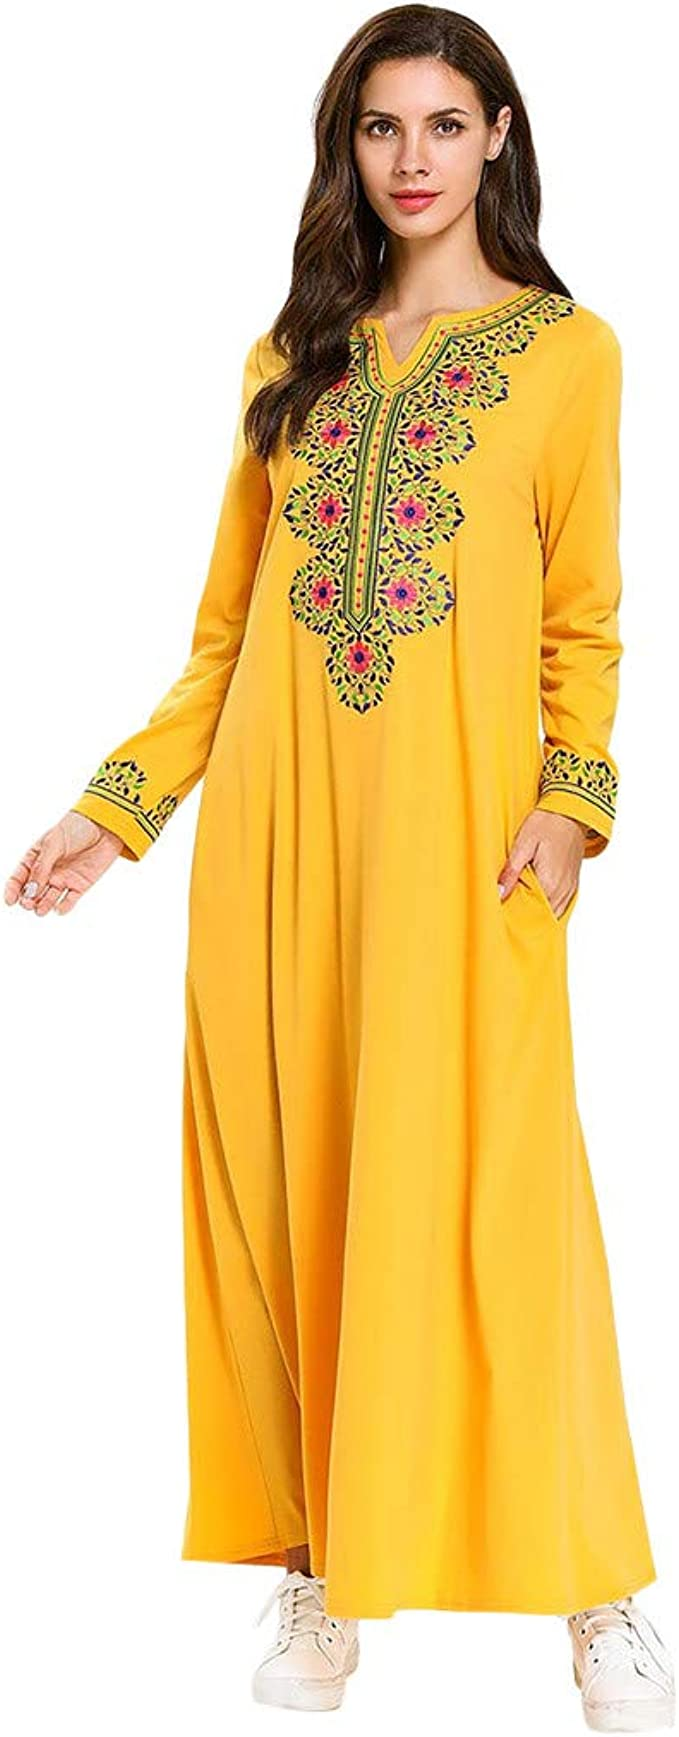 Yajiemen Women Muslim Printing Longsleeve Arab Dress Islam Jilbab Dress